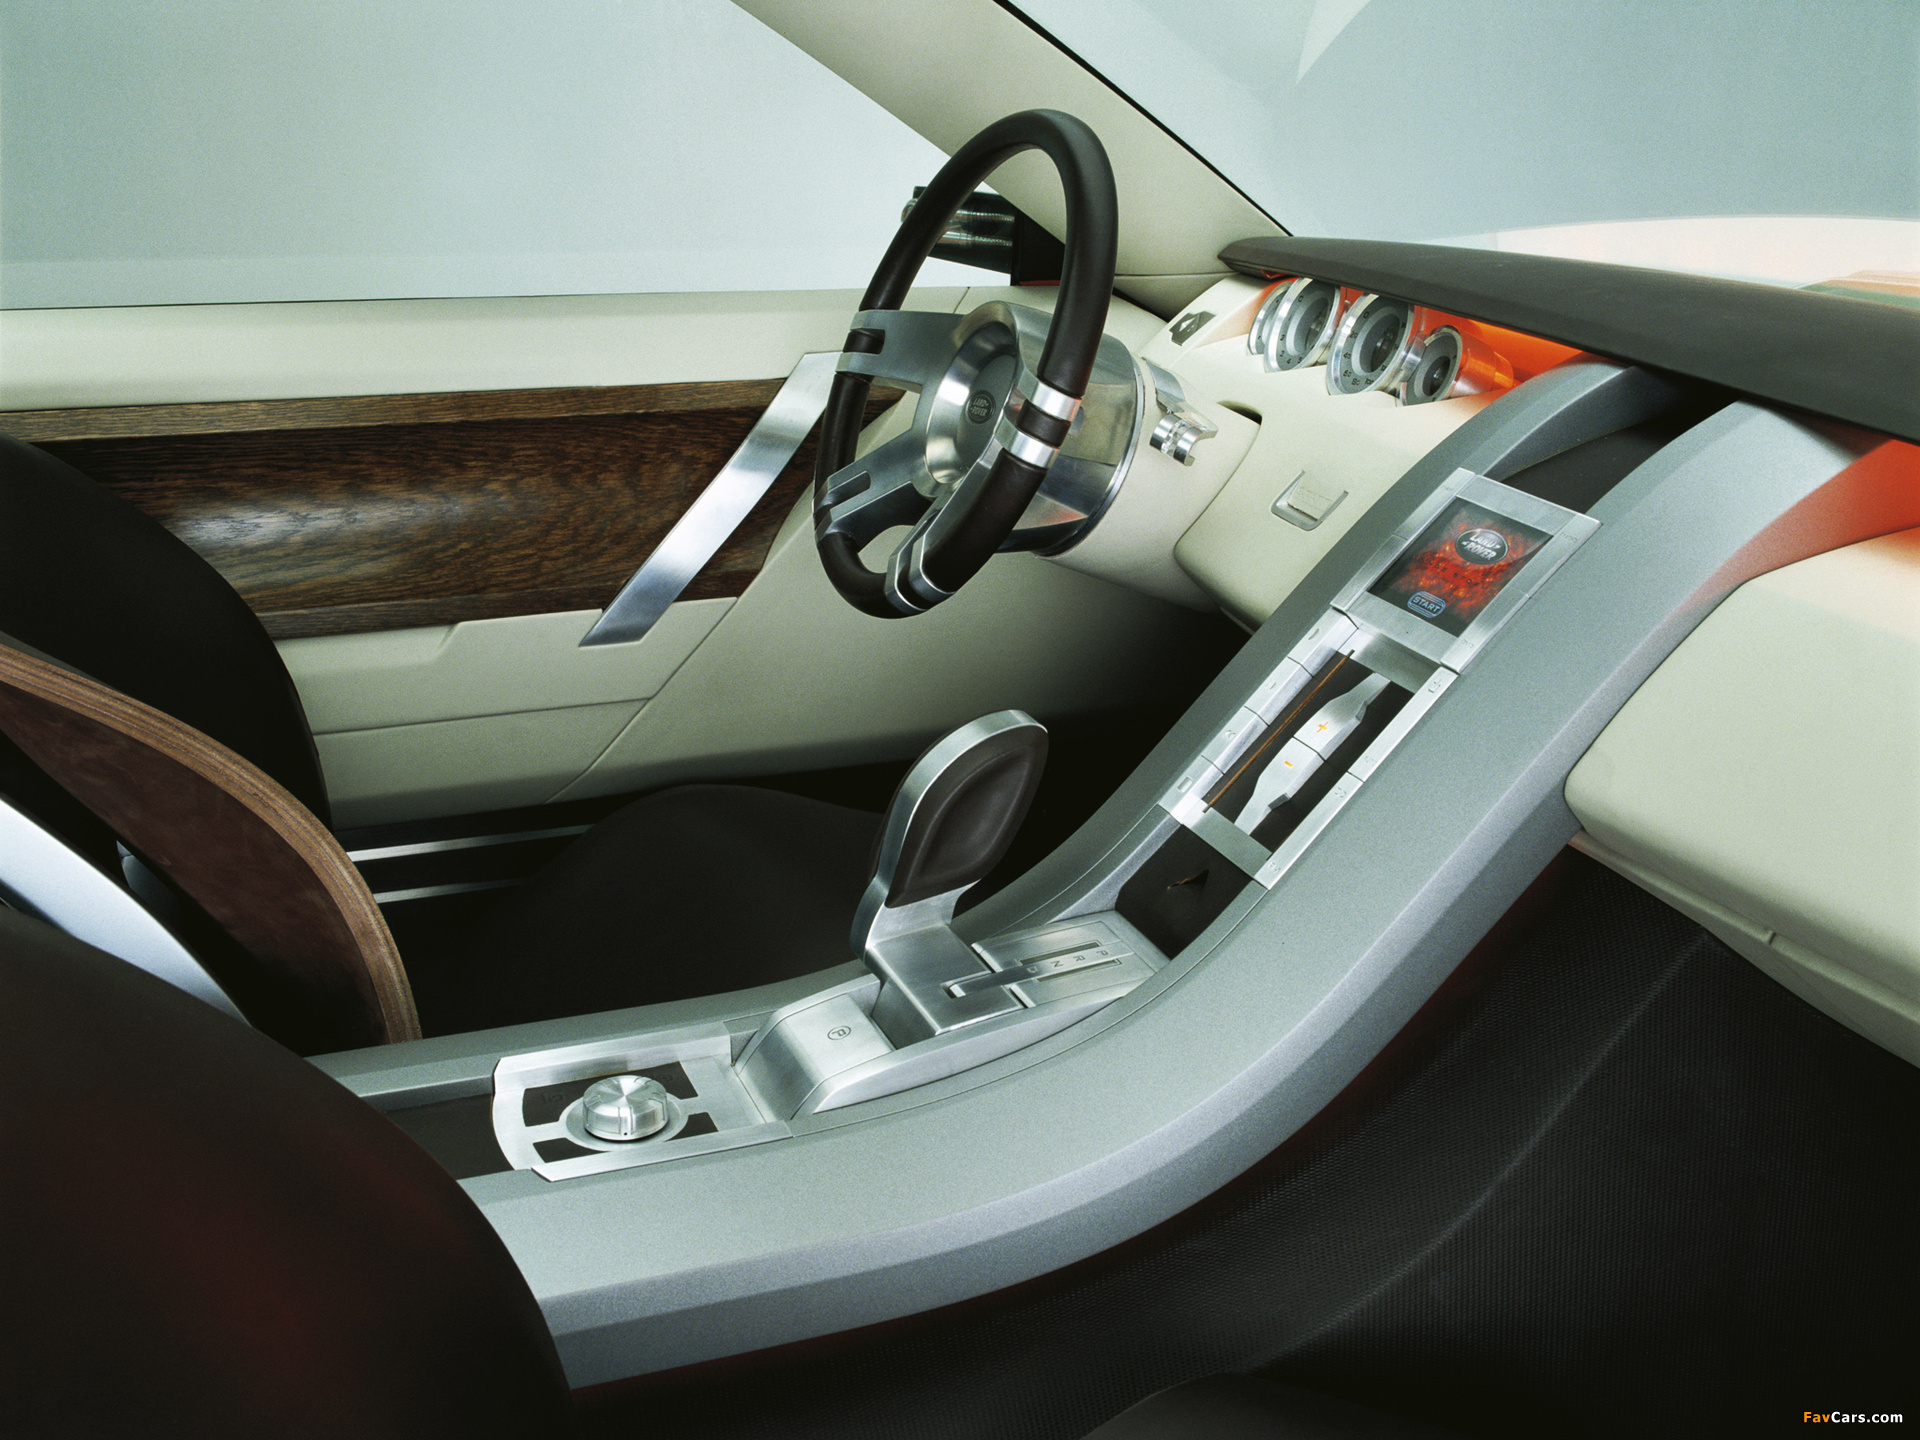 https://img.favcars.com/land-rover/concepts/land_rover_concepts_2004_pictures_1.jpg